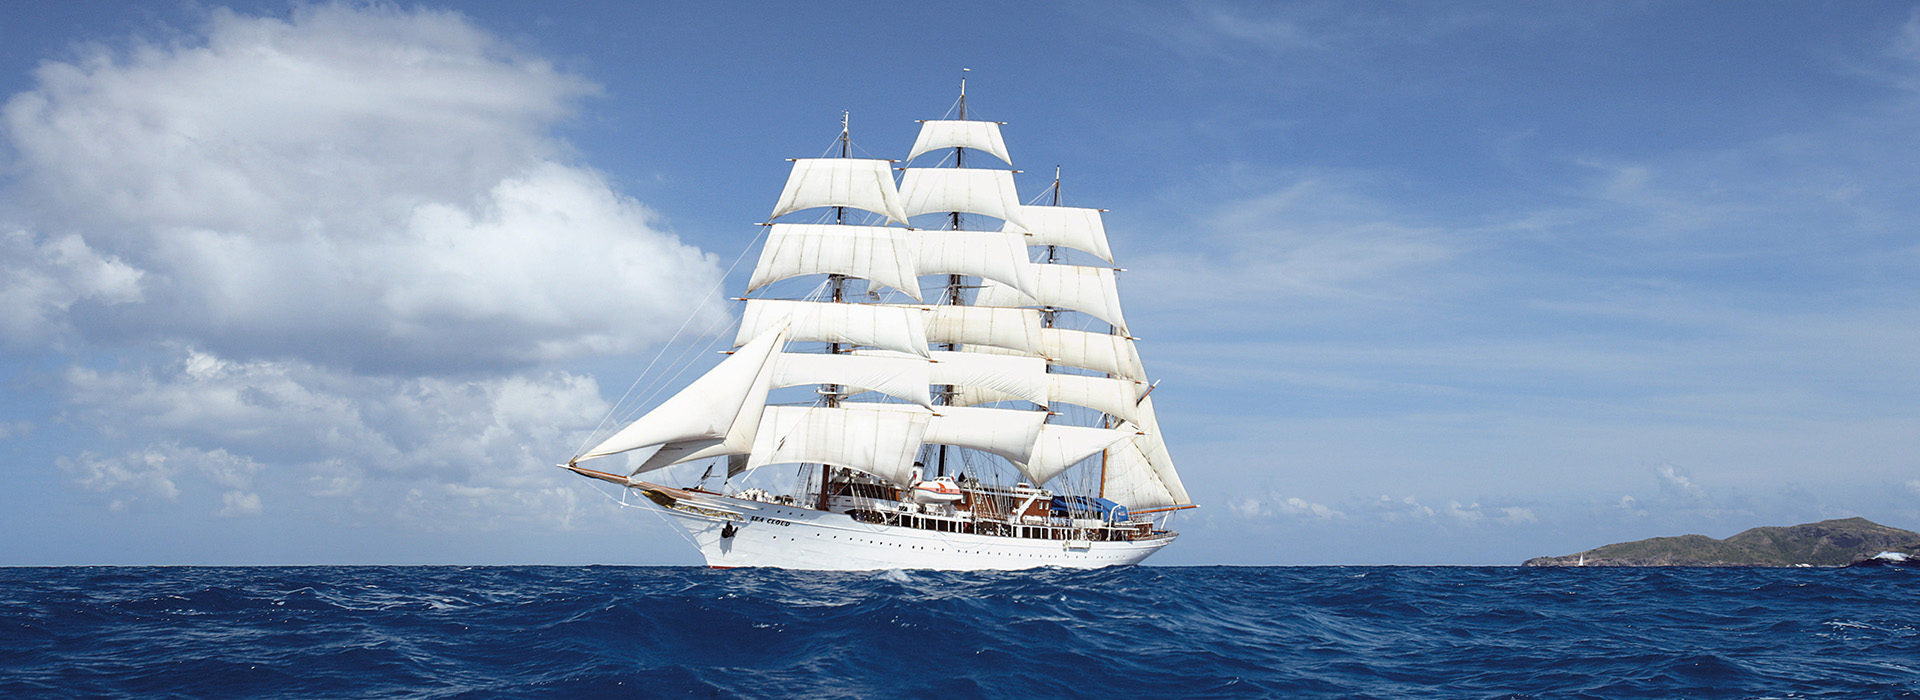 Sea Cloud mit vollen Segeln